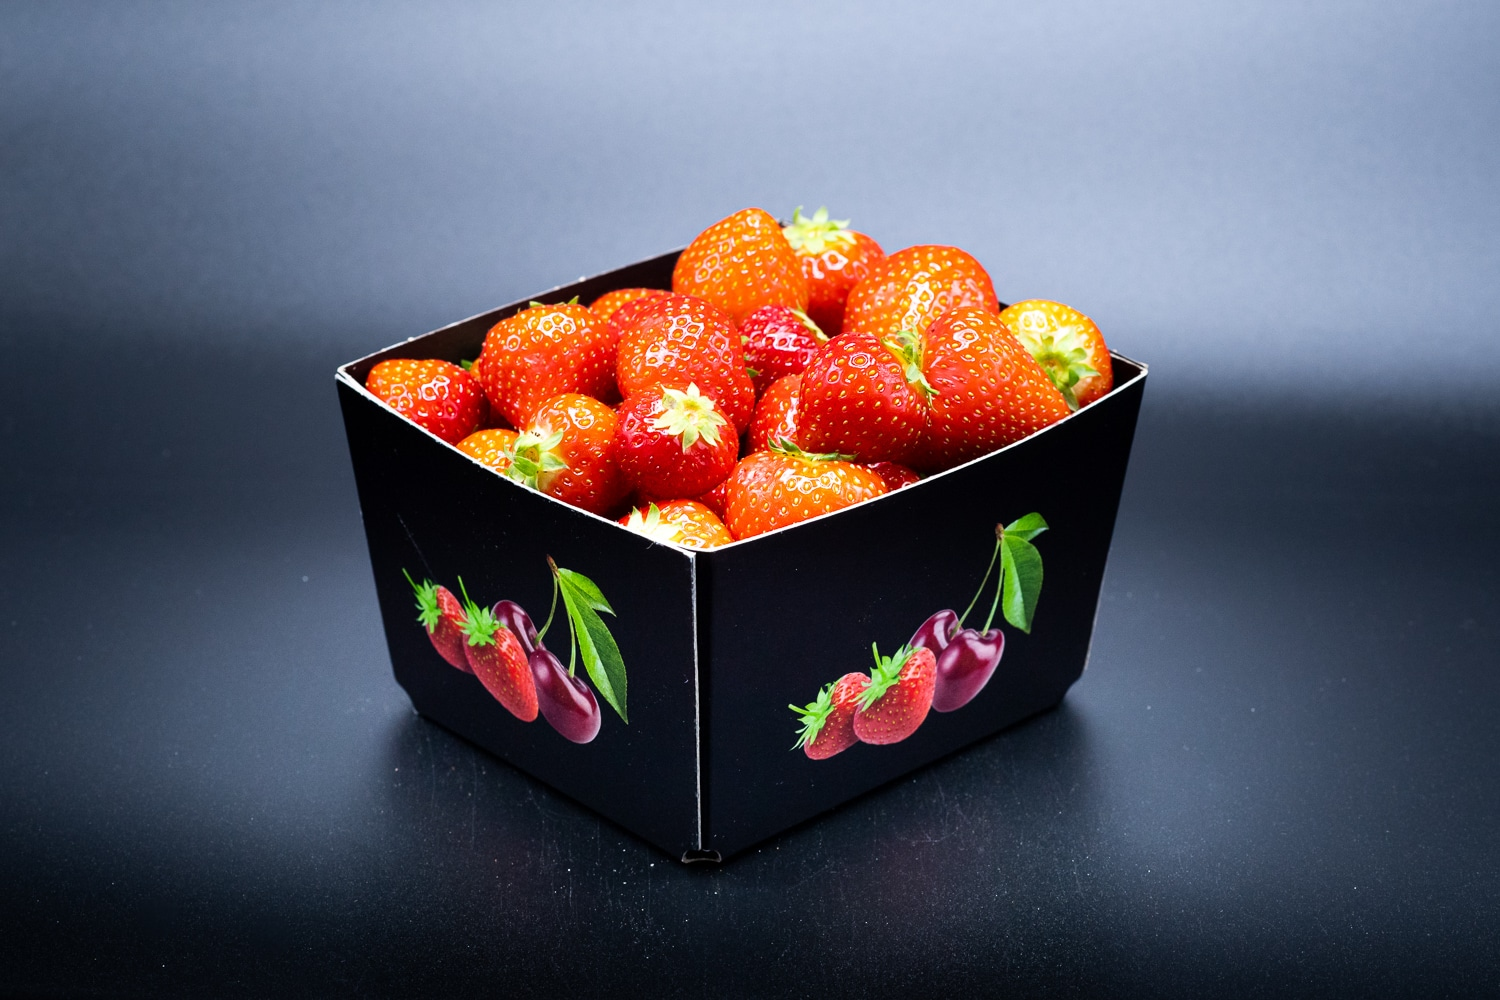 Solutions-cardboard-punnets-fruit-strawberries